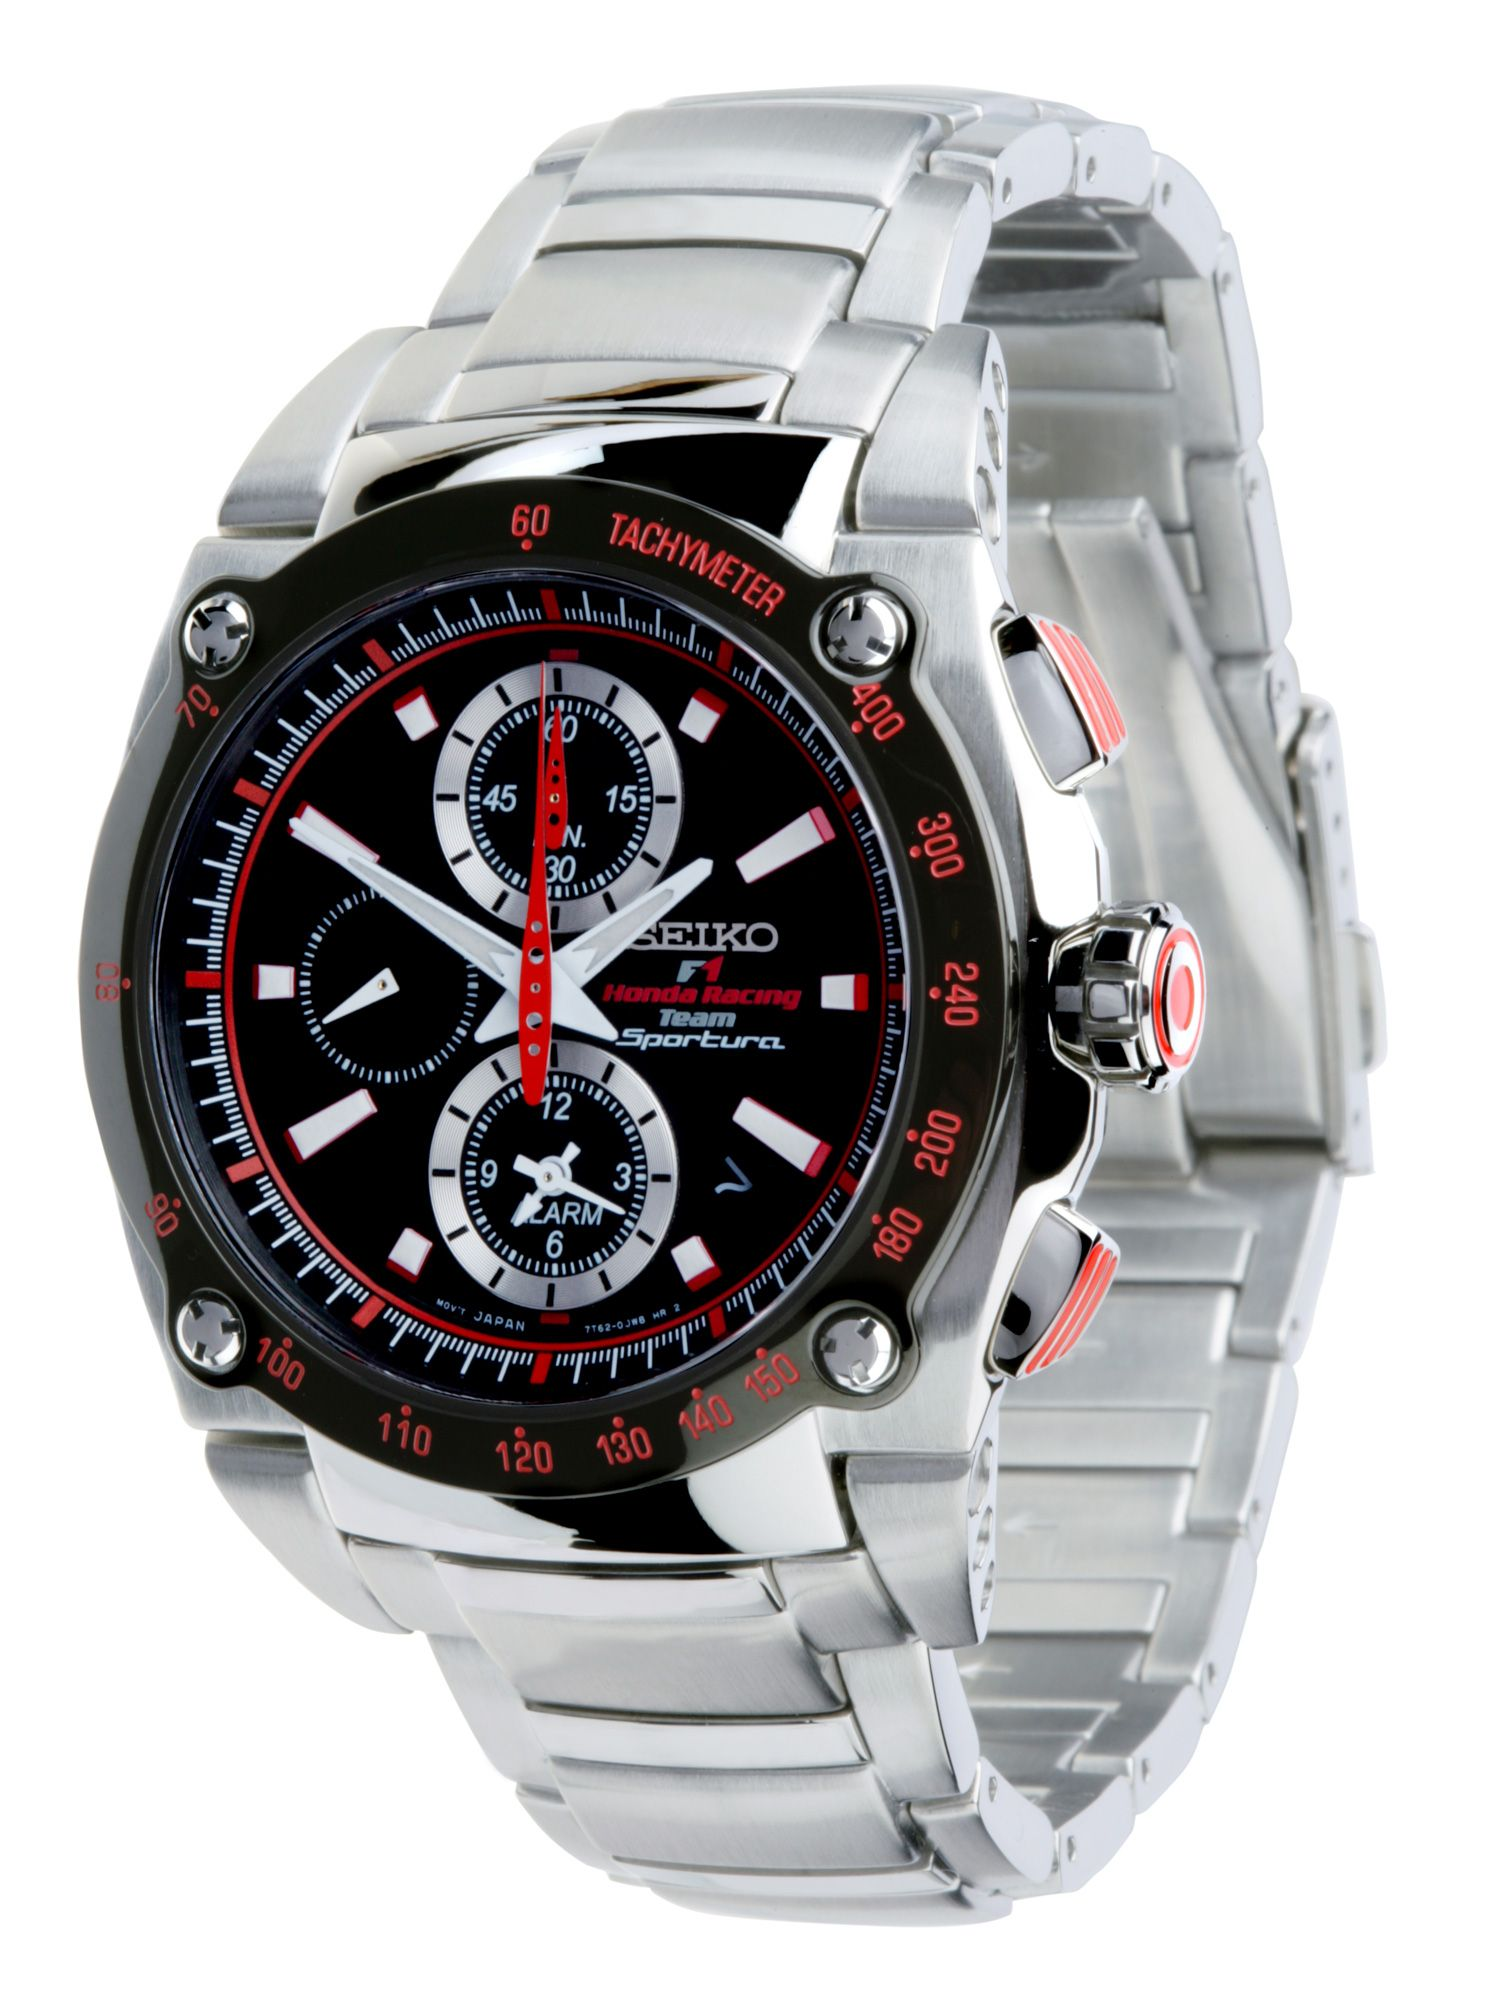 Seiko Multifunctional chronograph watch product image